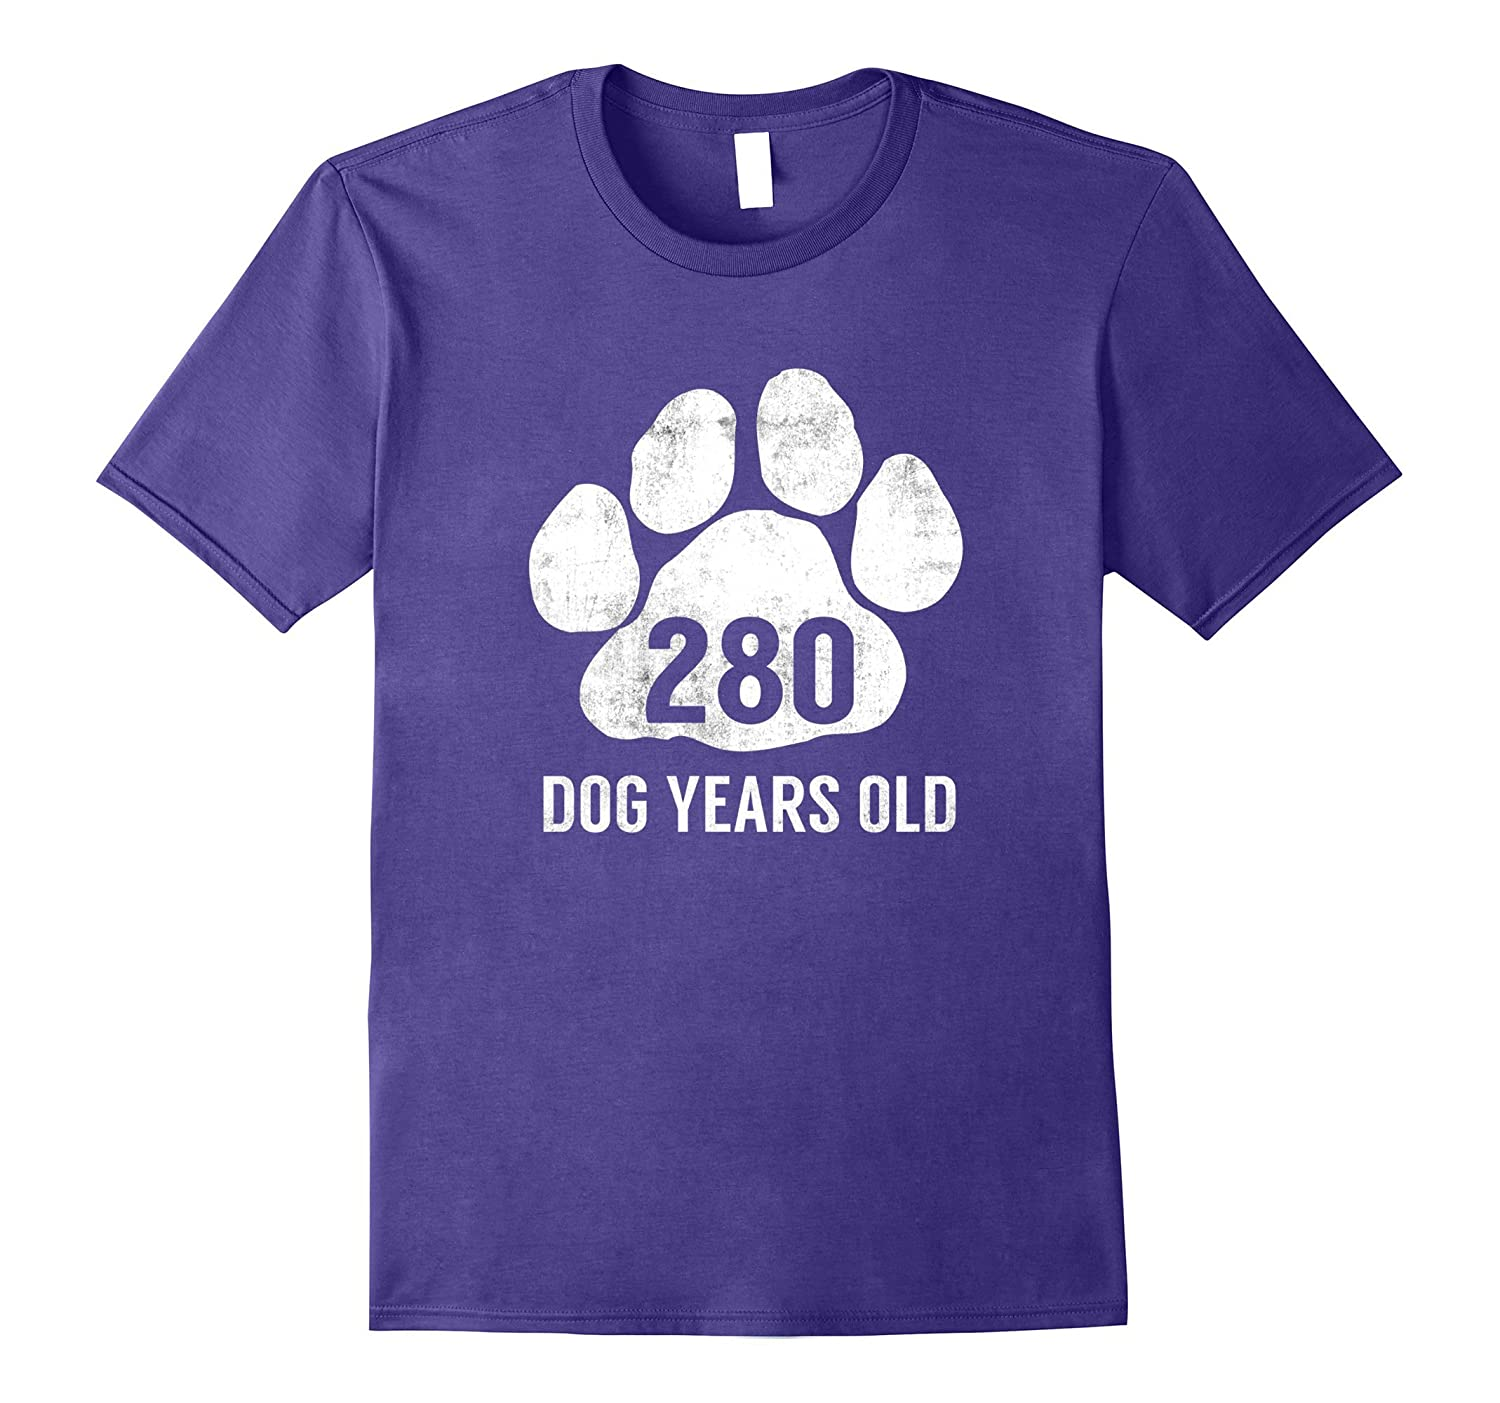 280 Dog Years Old T-Shirt Funny 40th Birthday Gag Gift-Vaci